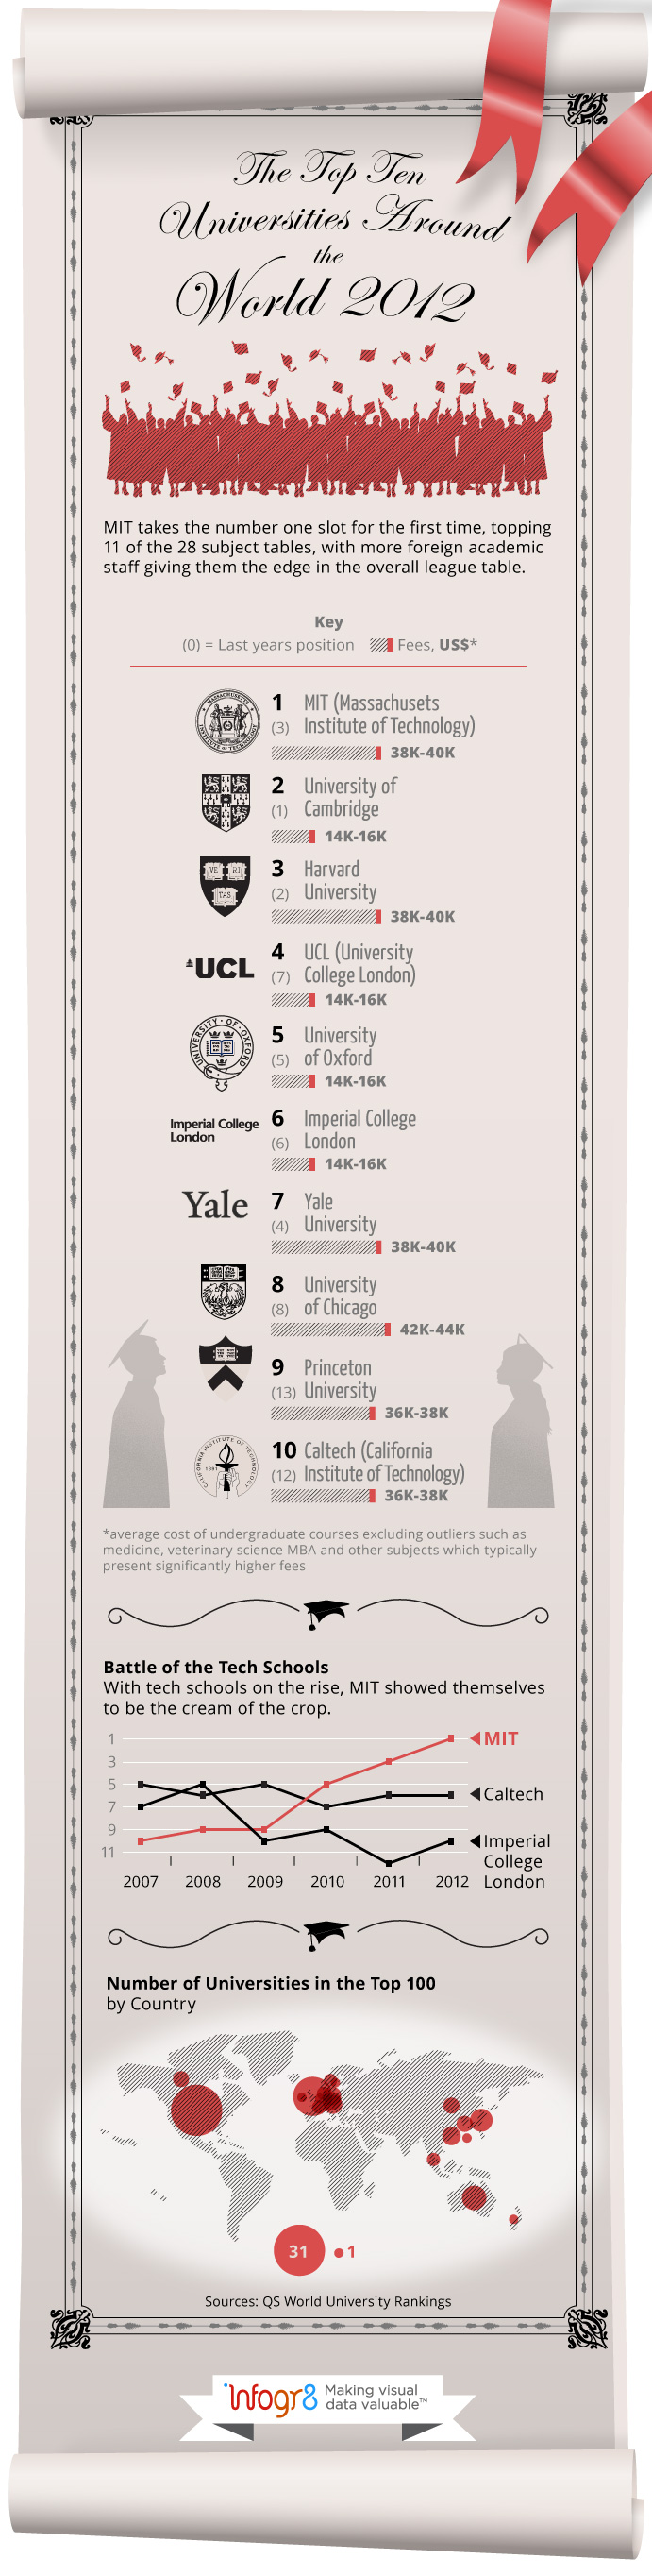 The Top 10 Universities Around The World 2012 - Education Infographic